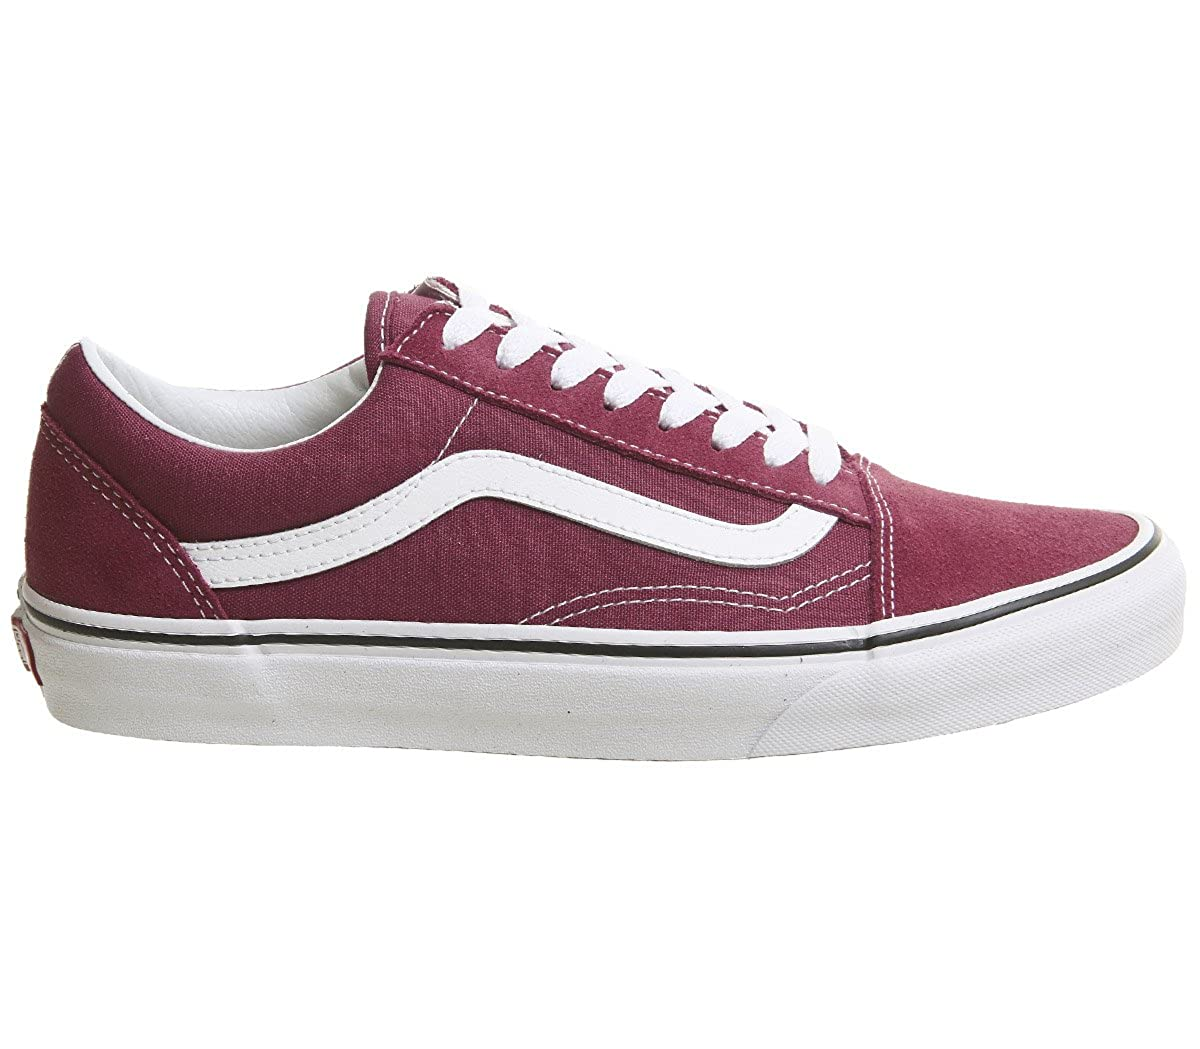 Vans Old Skool Dry Rose True White 46